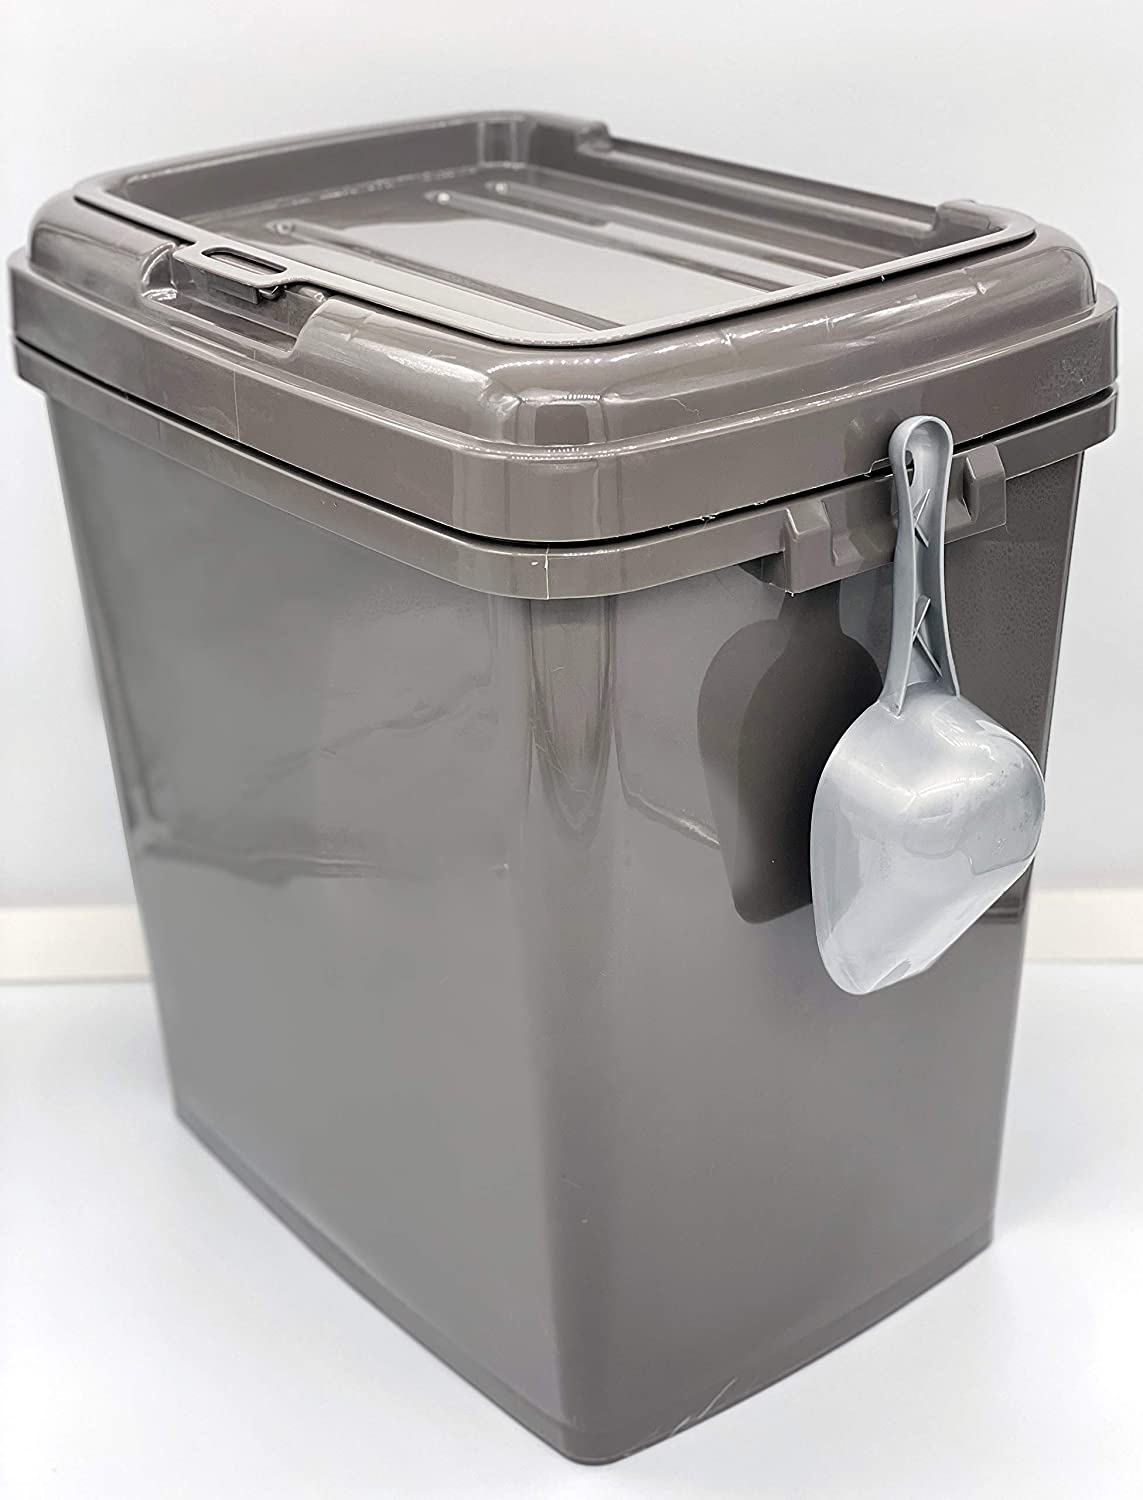 Large Airtight Plastic Storage Container With Lid And Wheels Perfect for Kitchen and Household Organization